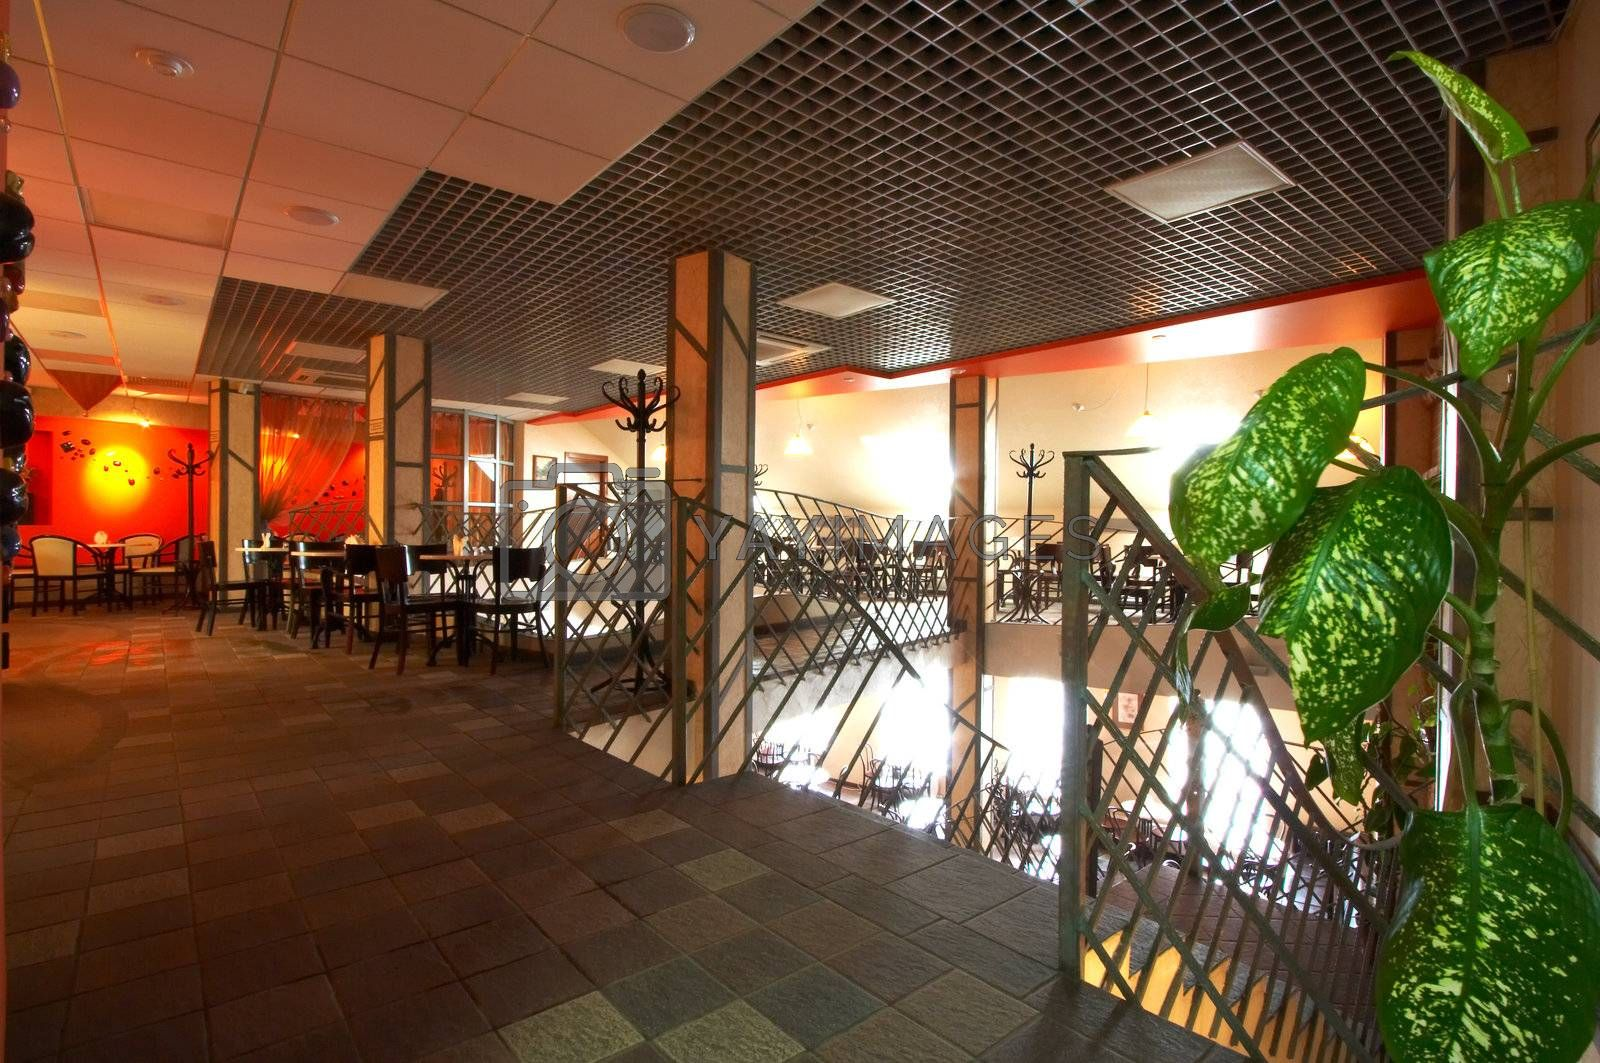 Beautiful modern cafe with an ornamental plant